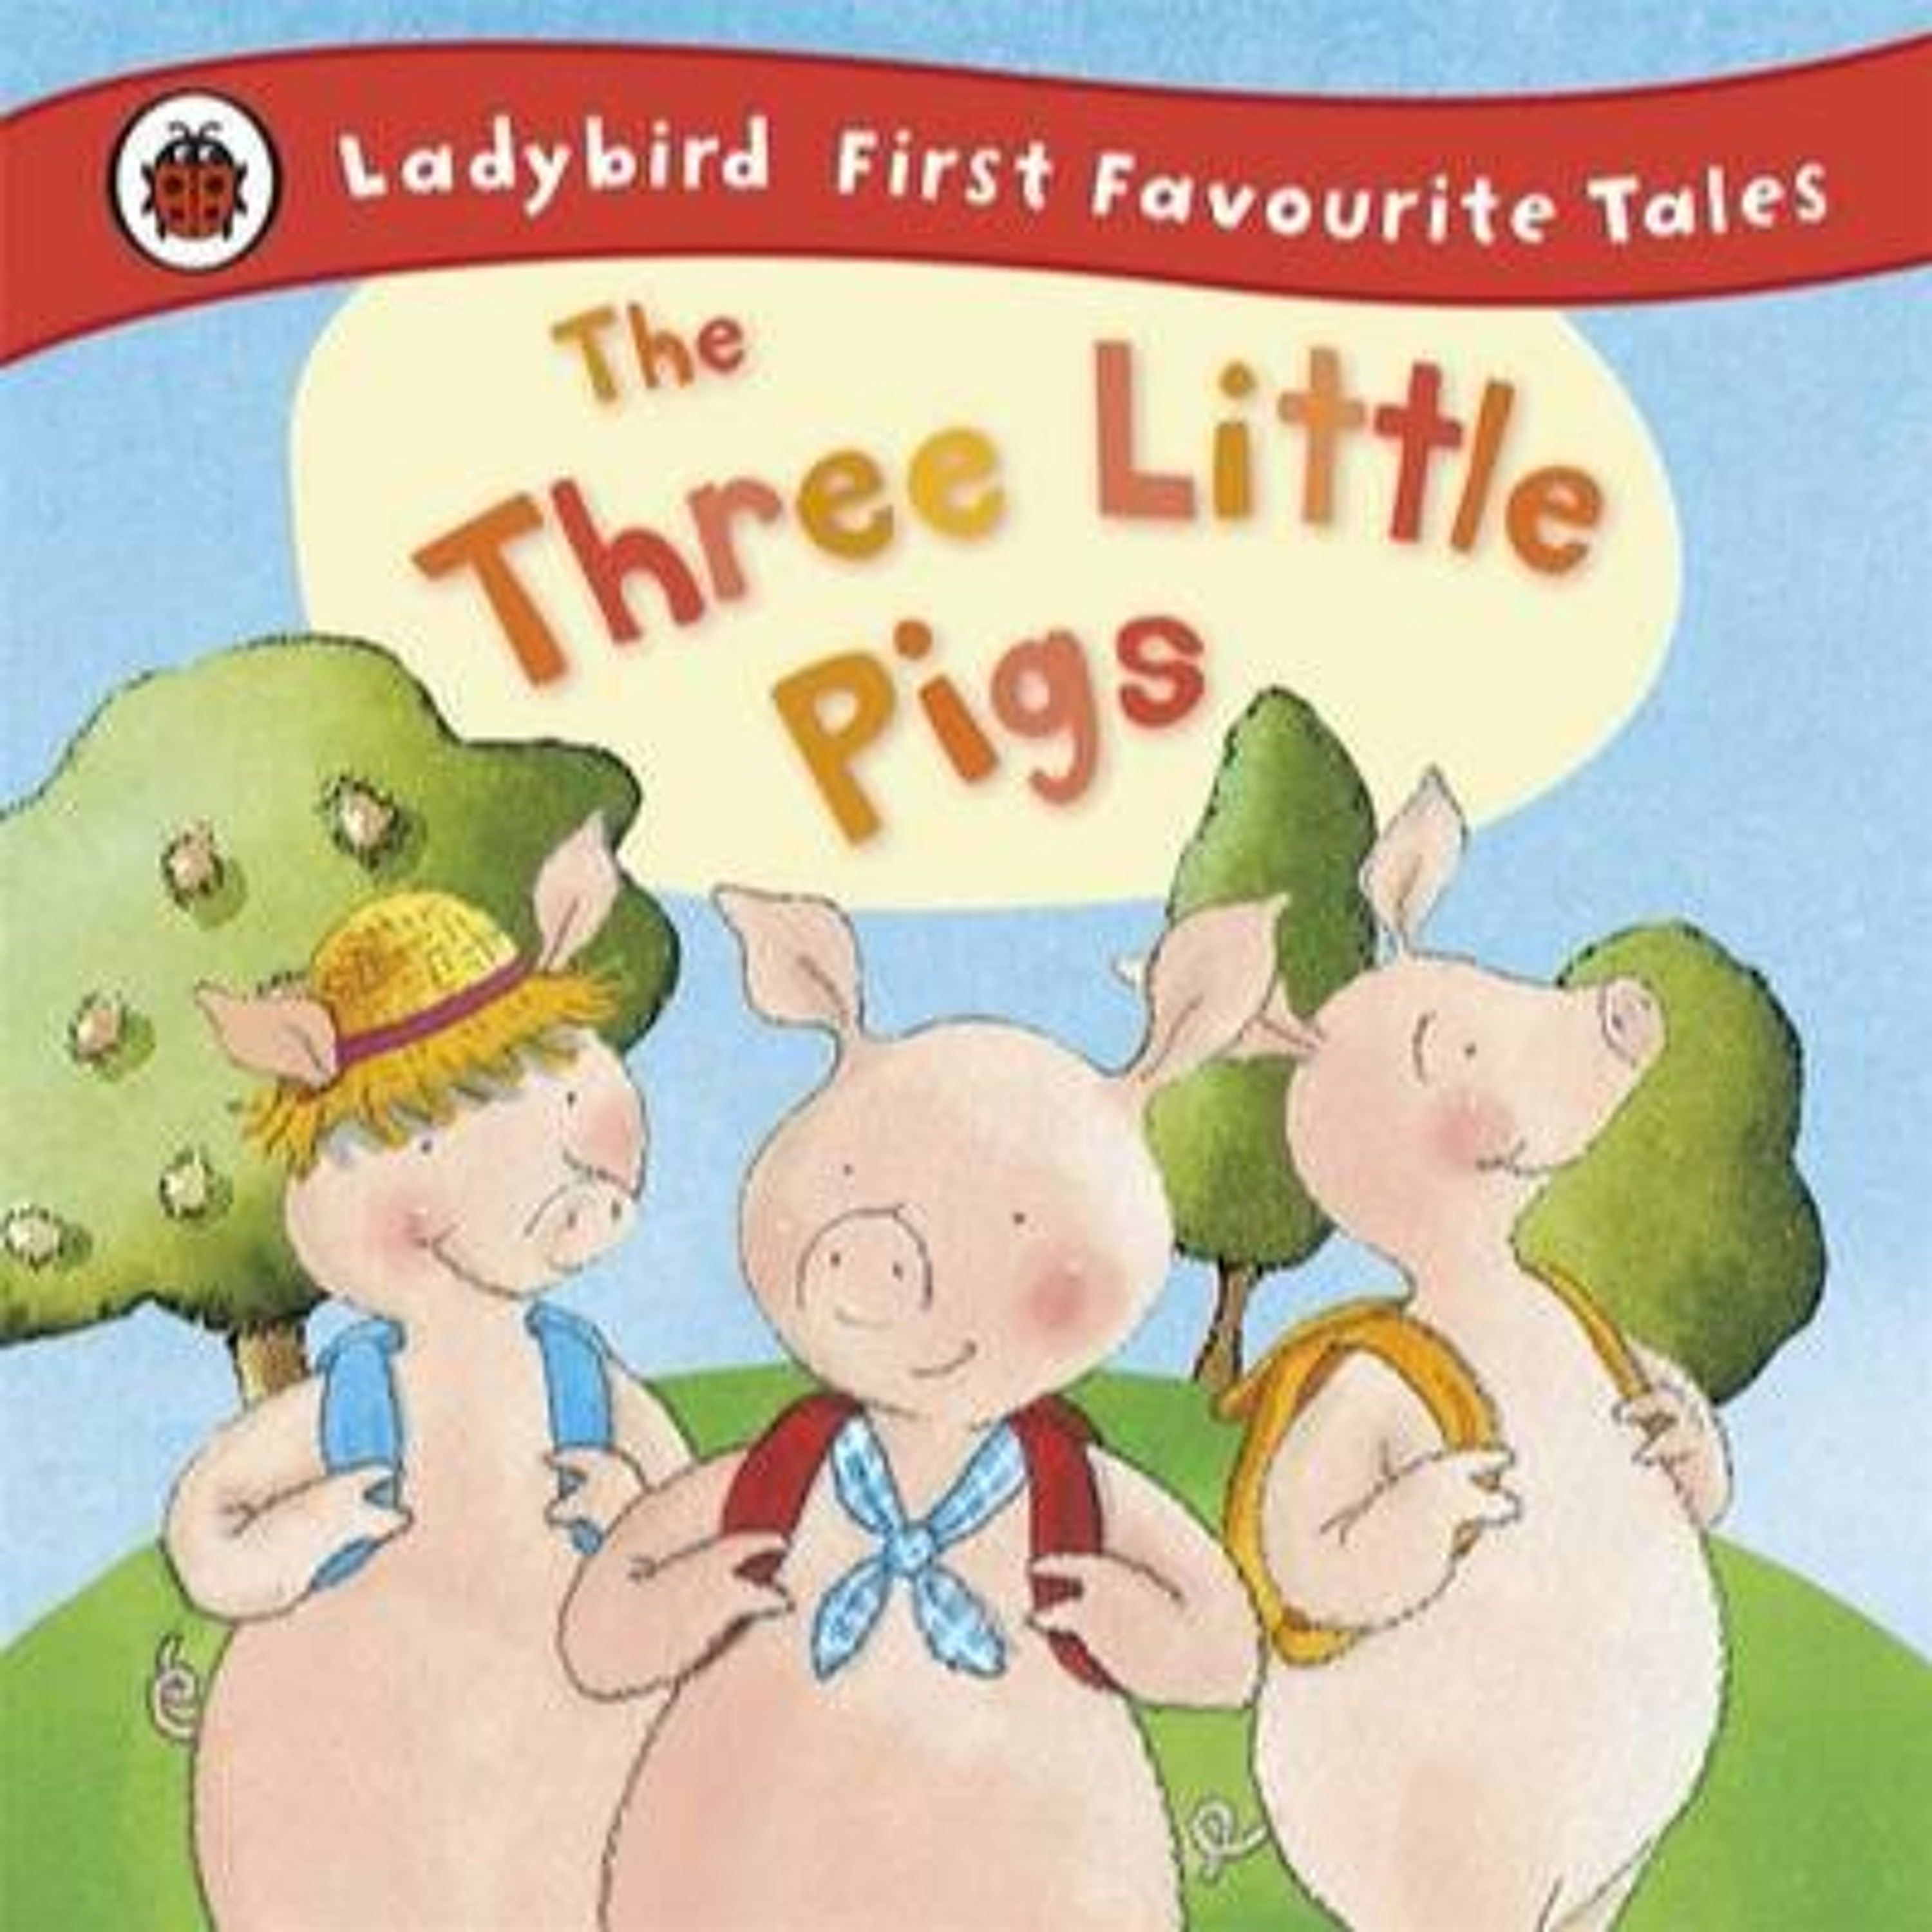 'The Three Little Pigs' by Nicola Baxter & Jan Lewis